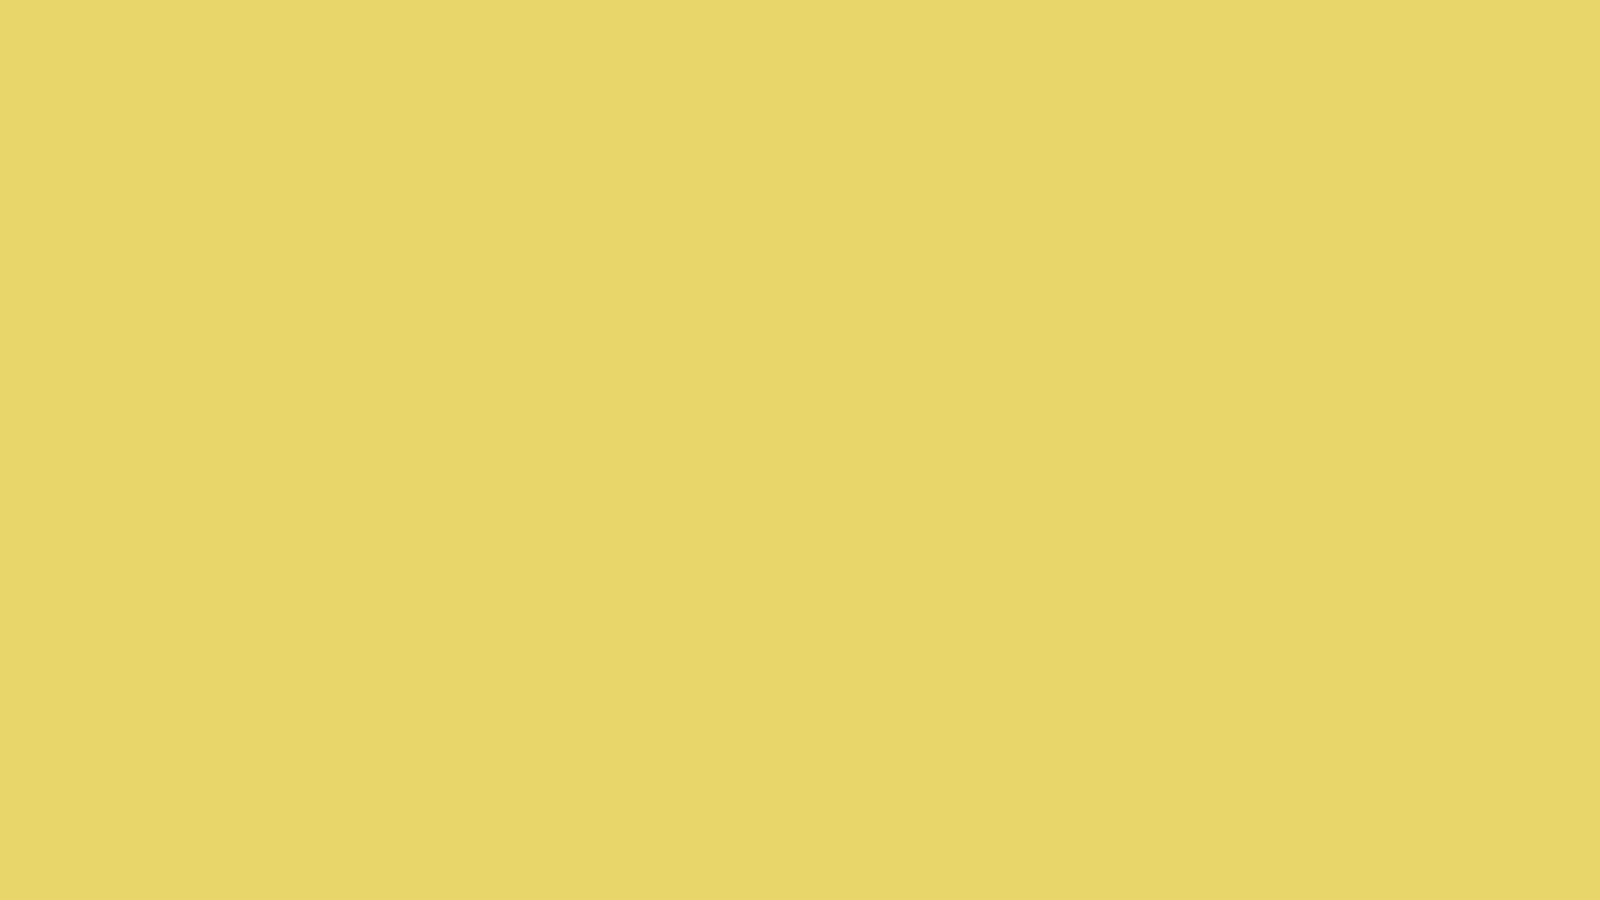 1600x900 Arylide Yellow Solid Color Background